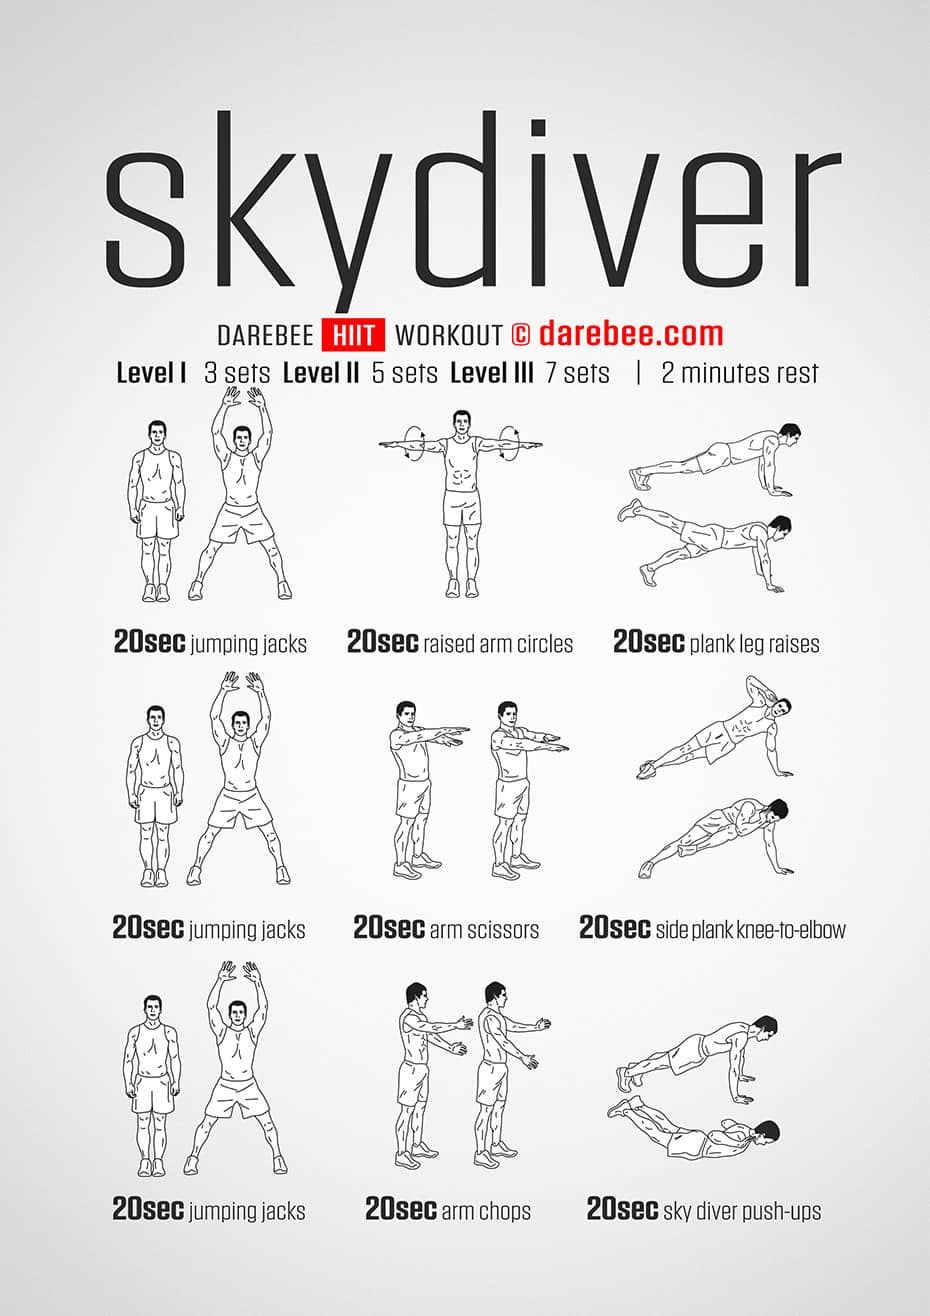 Training für Fallschirmspringer: Skydiver Workout